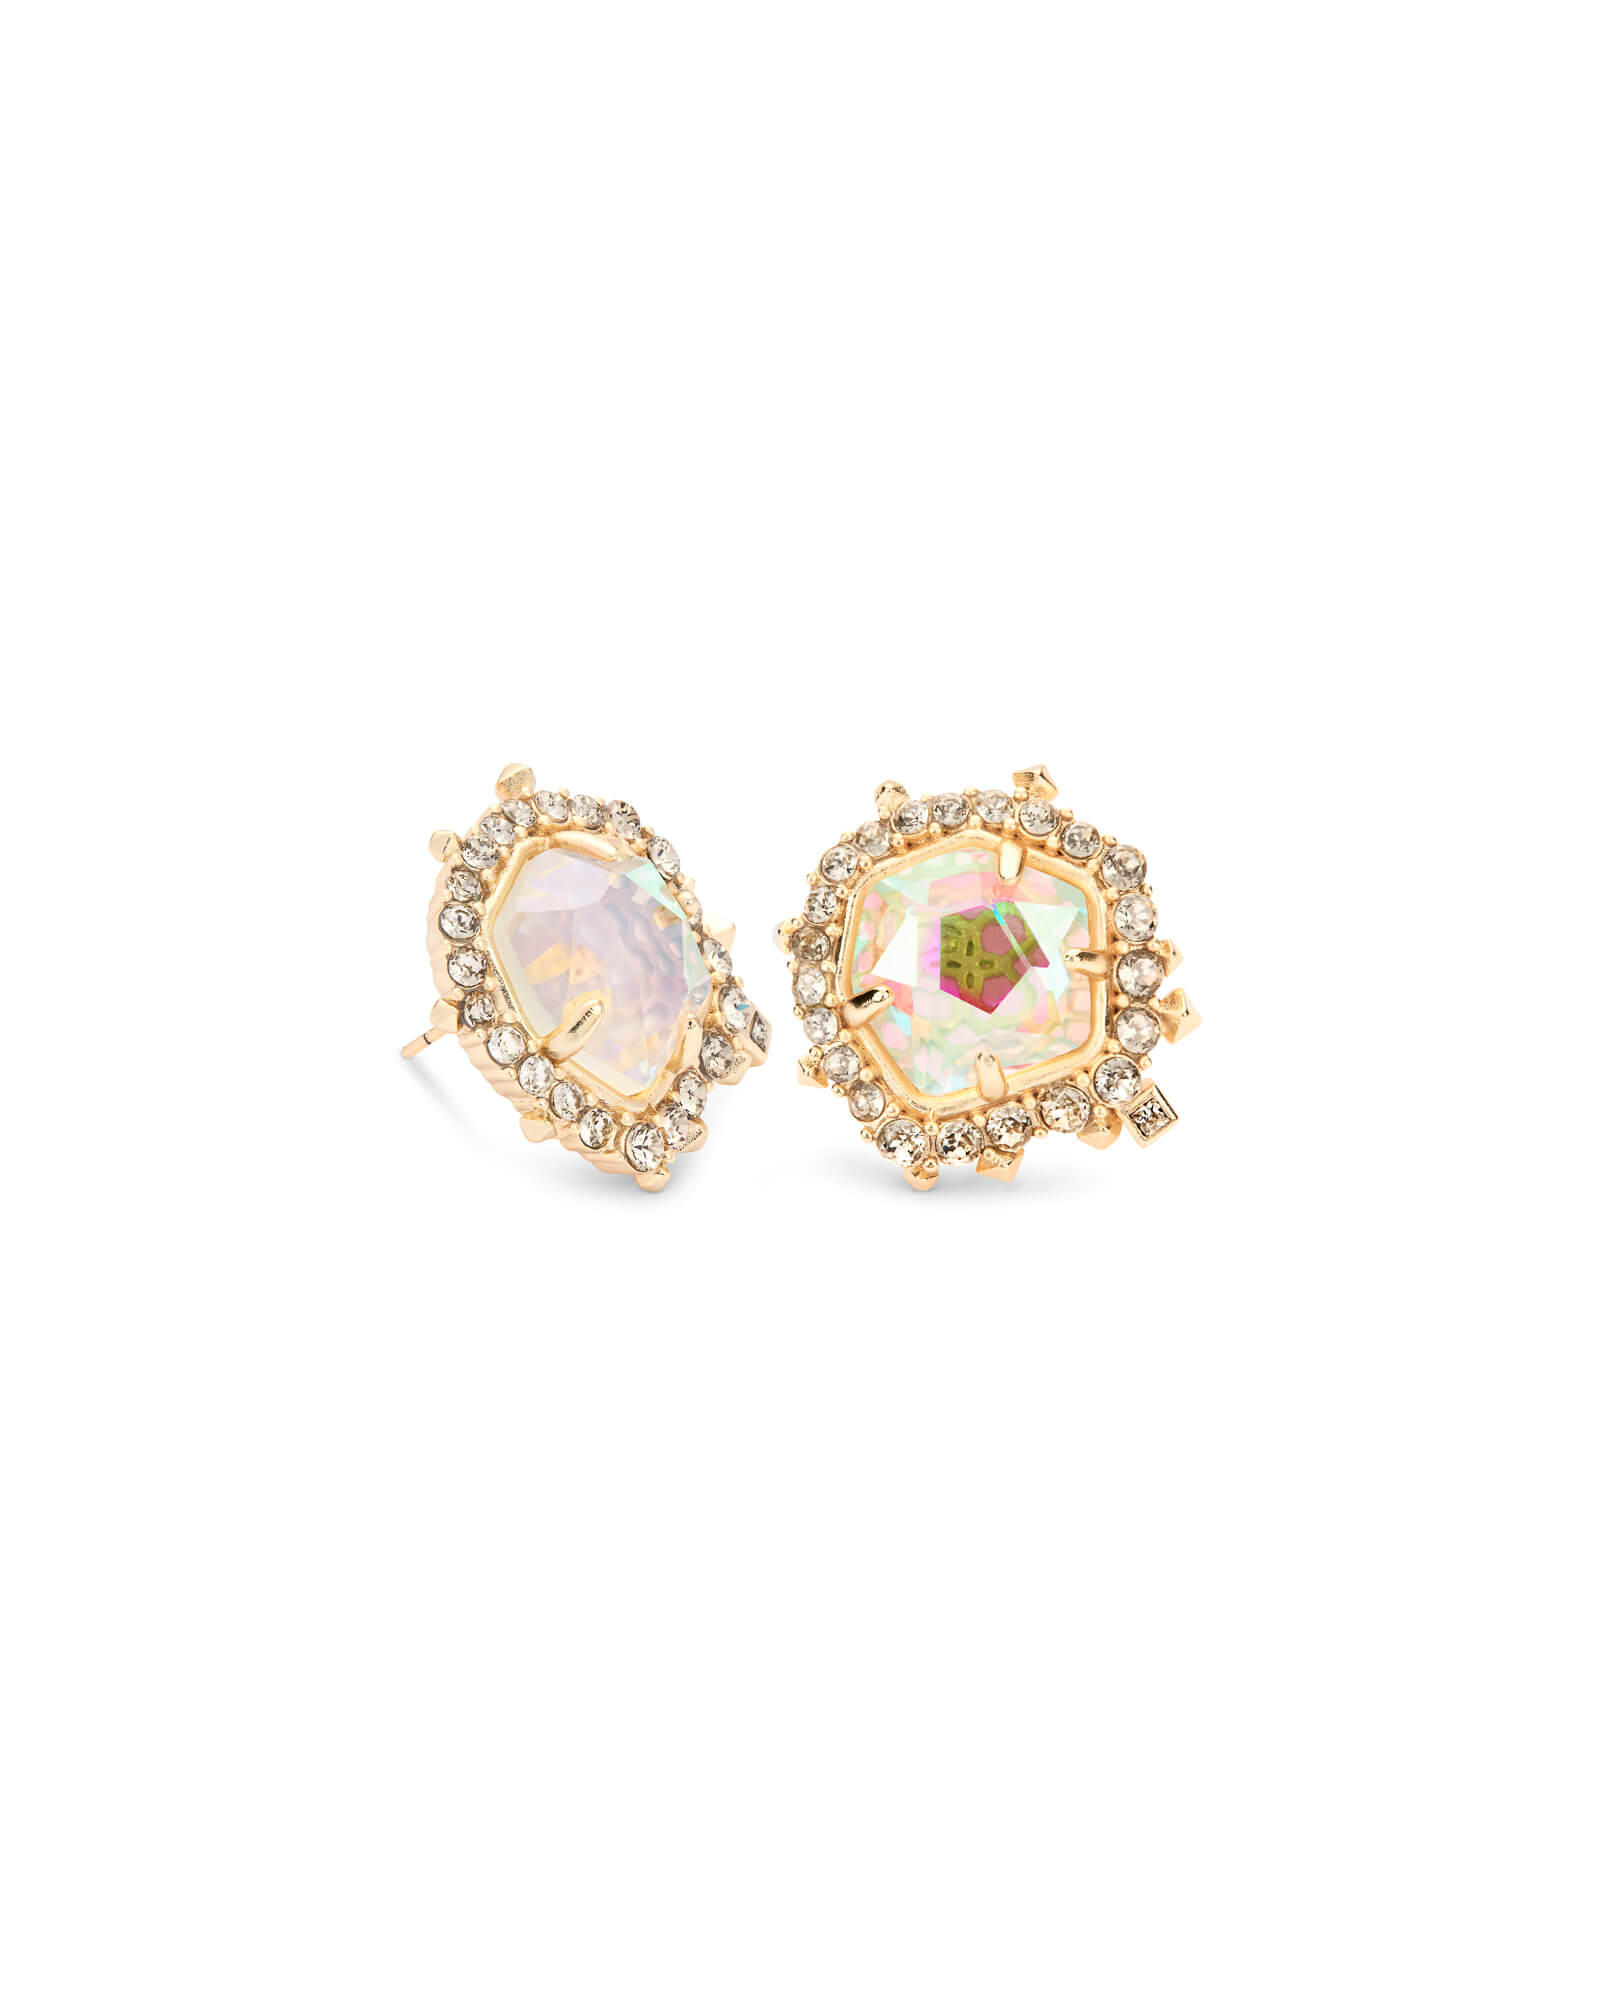 Abelia Gold Stud Earrings in Dichroic Glass